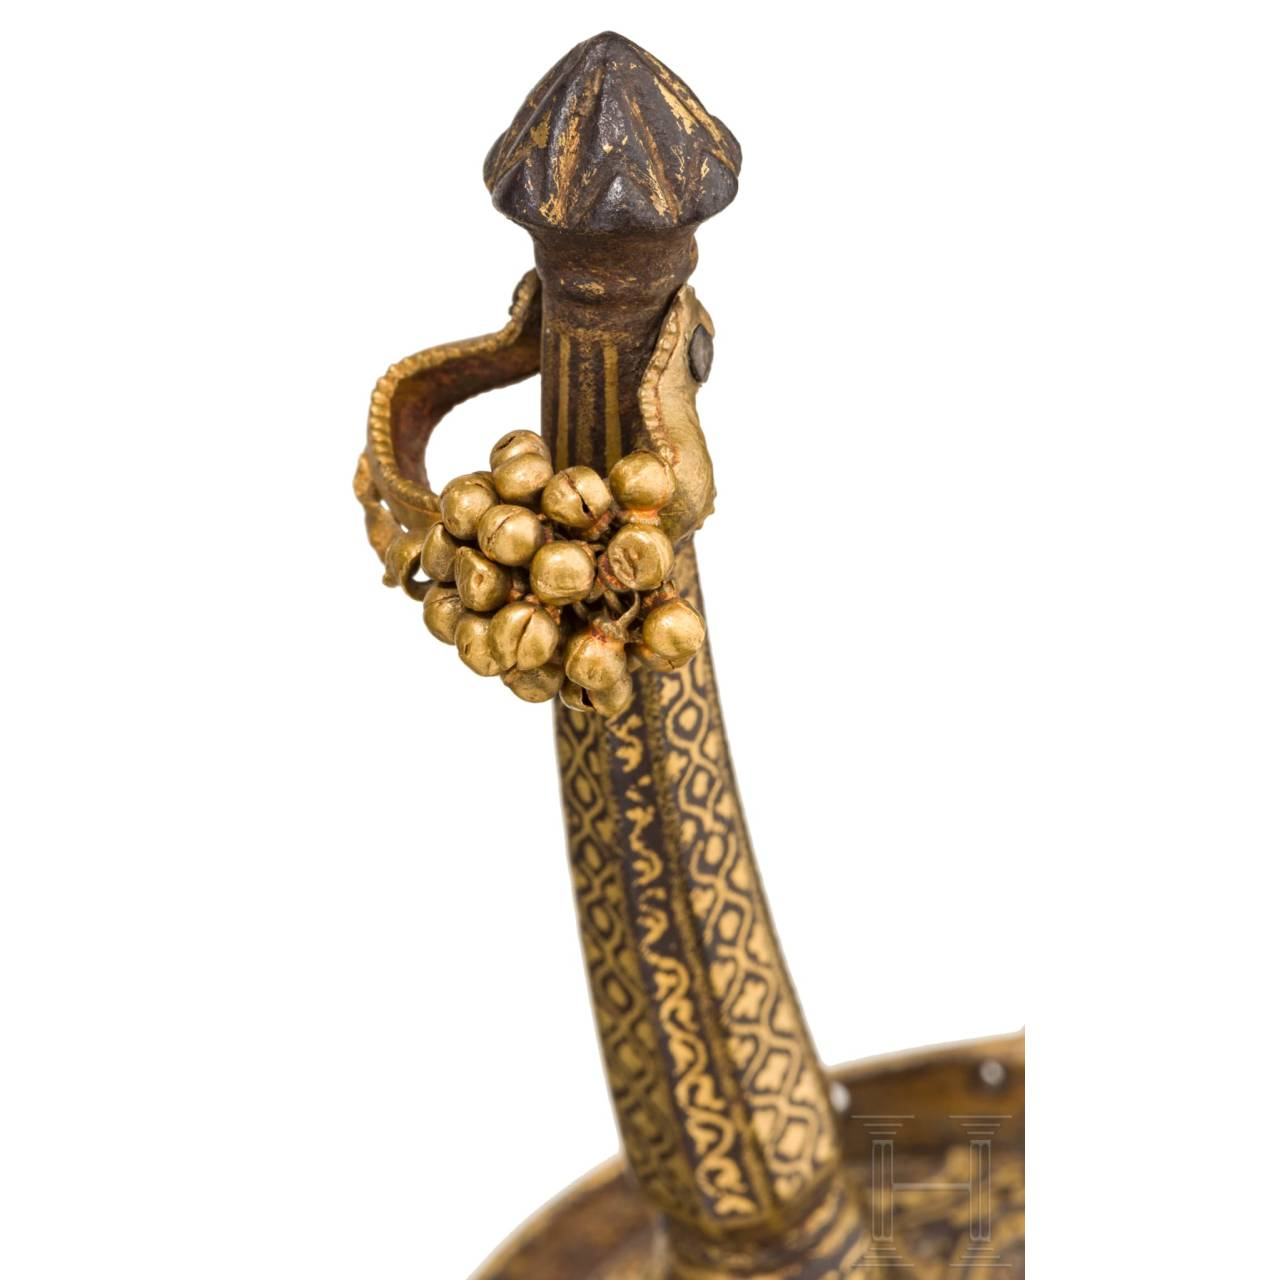 A significant, North Indian khanda with solid gold mounting, circa 1800